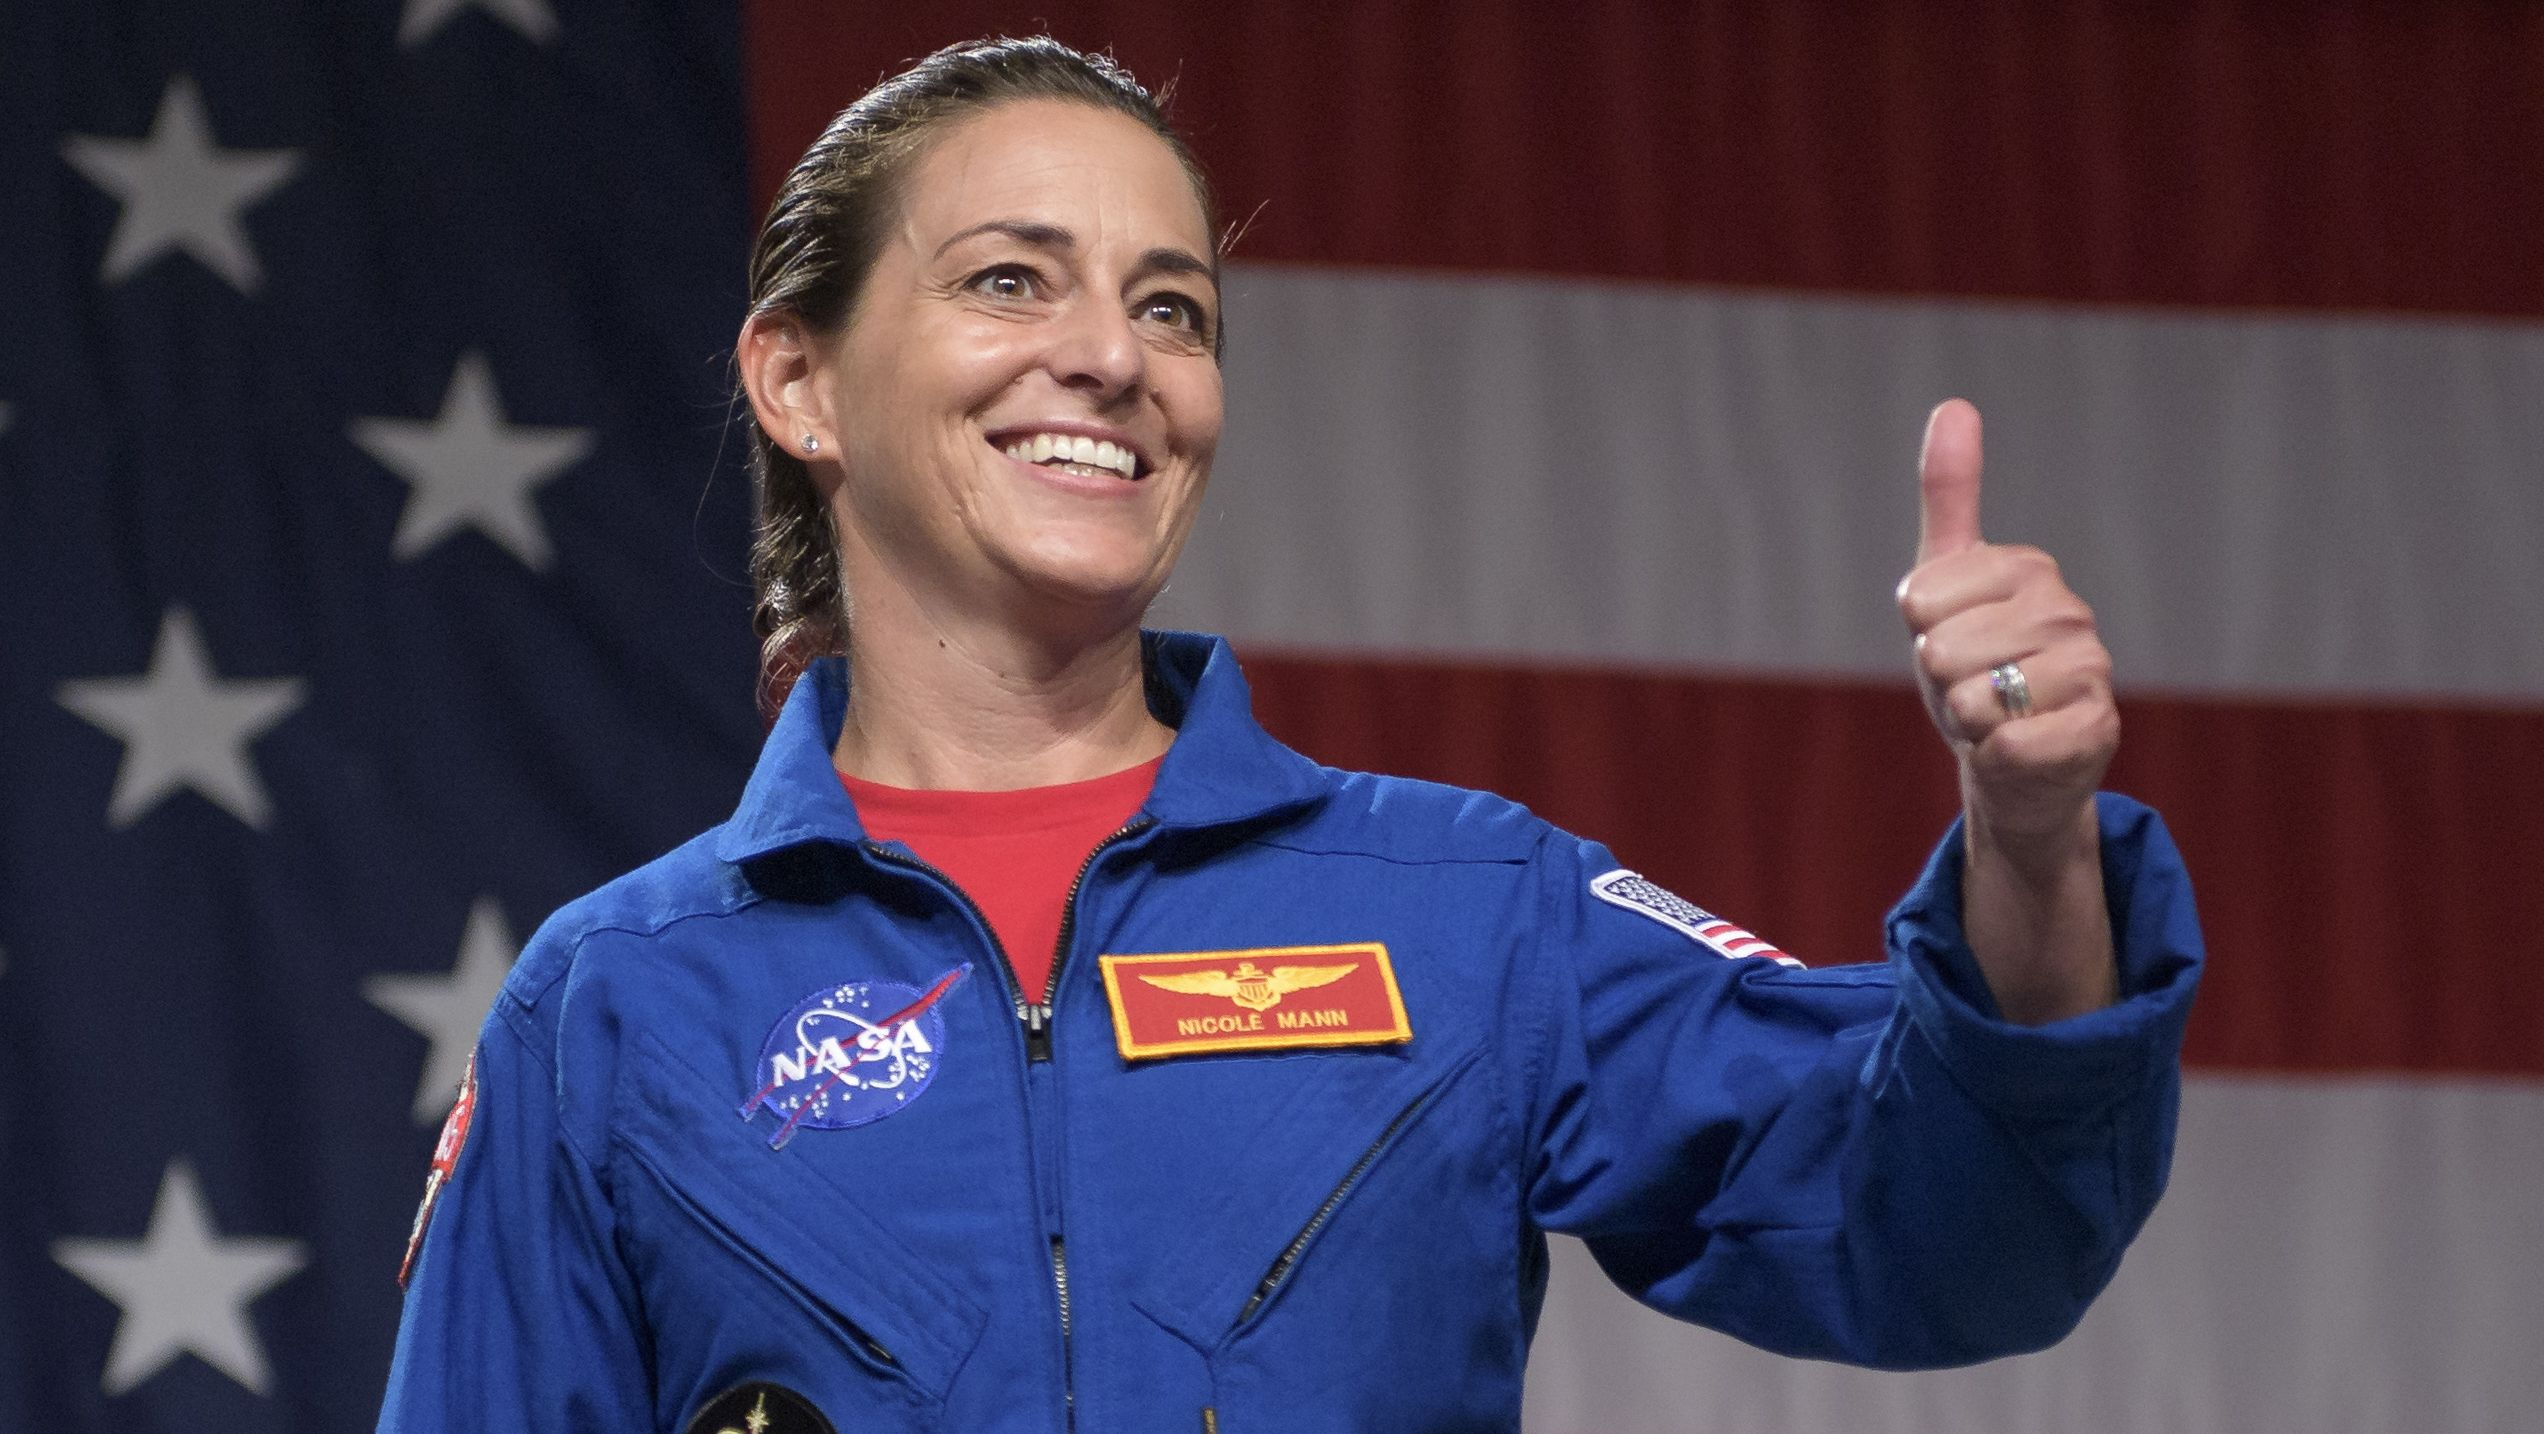 First Person on Mars Will Likely be a Woman, Says NASA Boss - Mental Floss